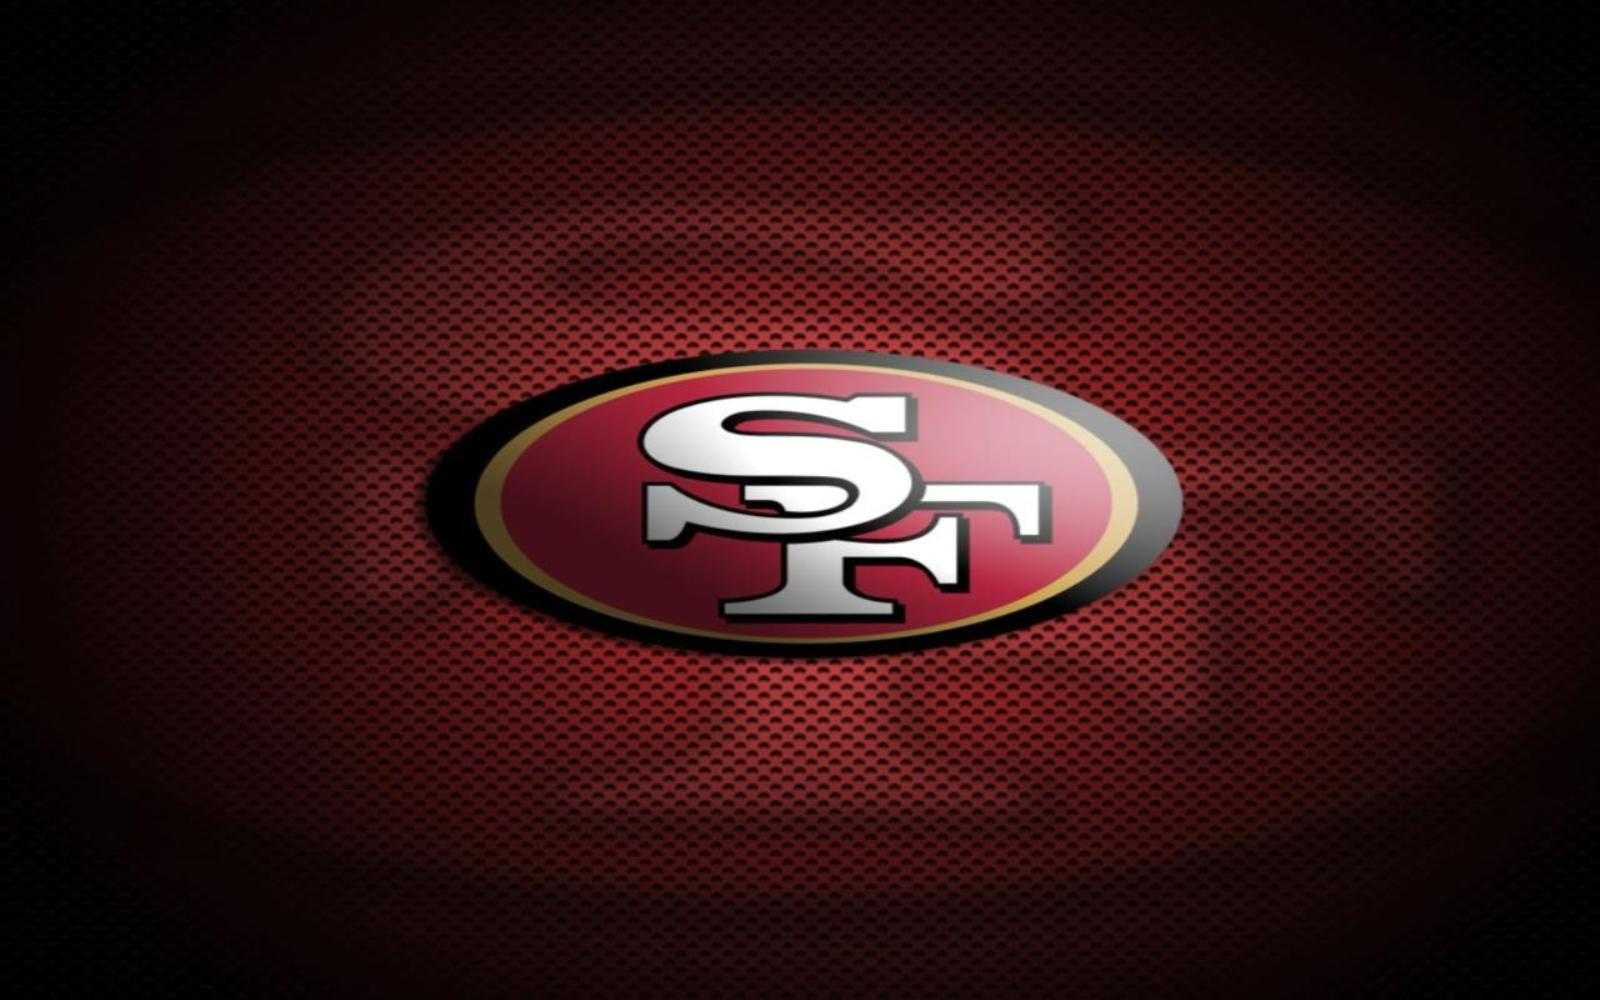 San francisco 49ers logo hd wallpapers wallpaper voltagebd Choice Image